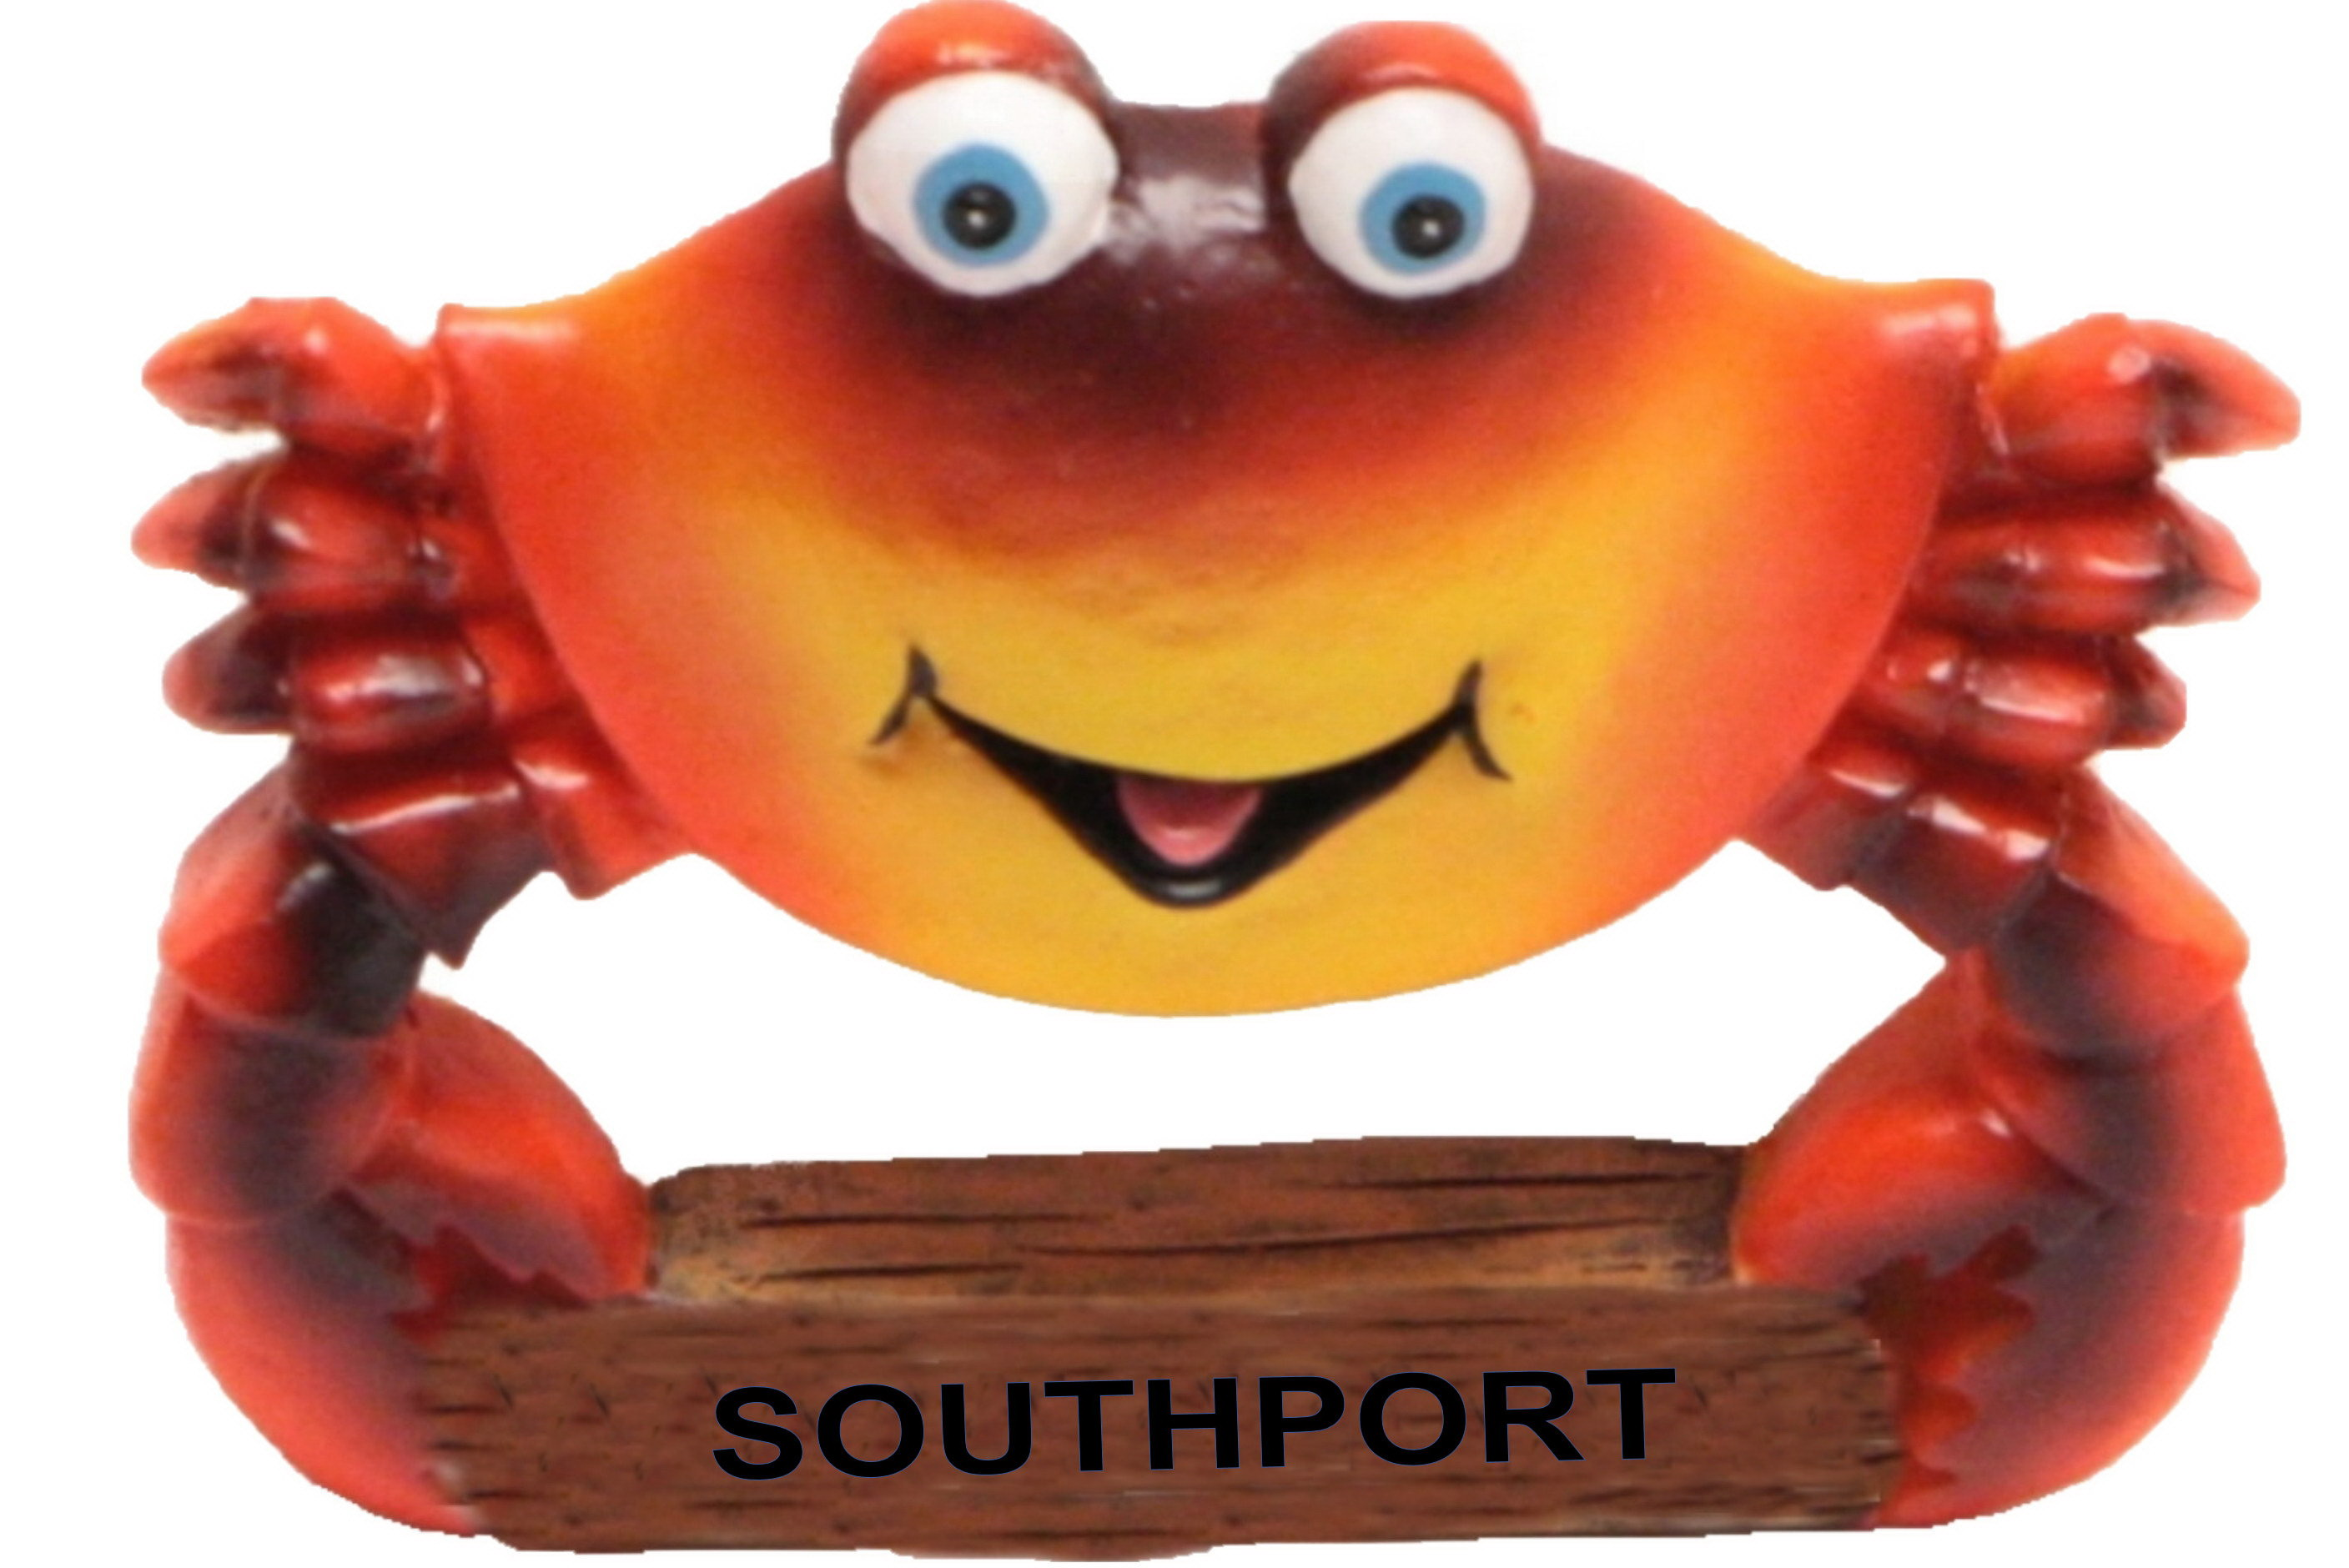 Southport Crab Resin Magnet